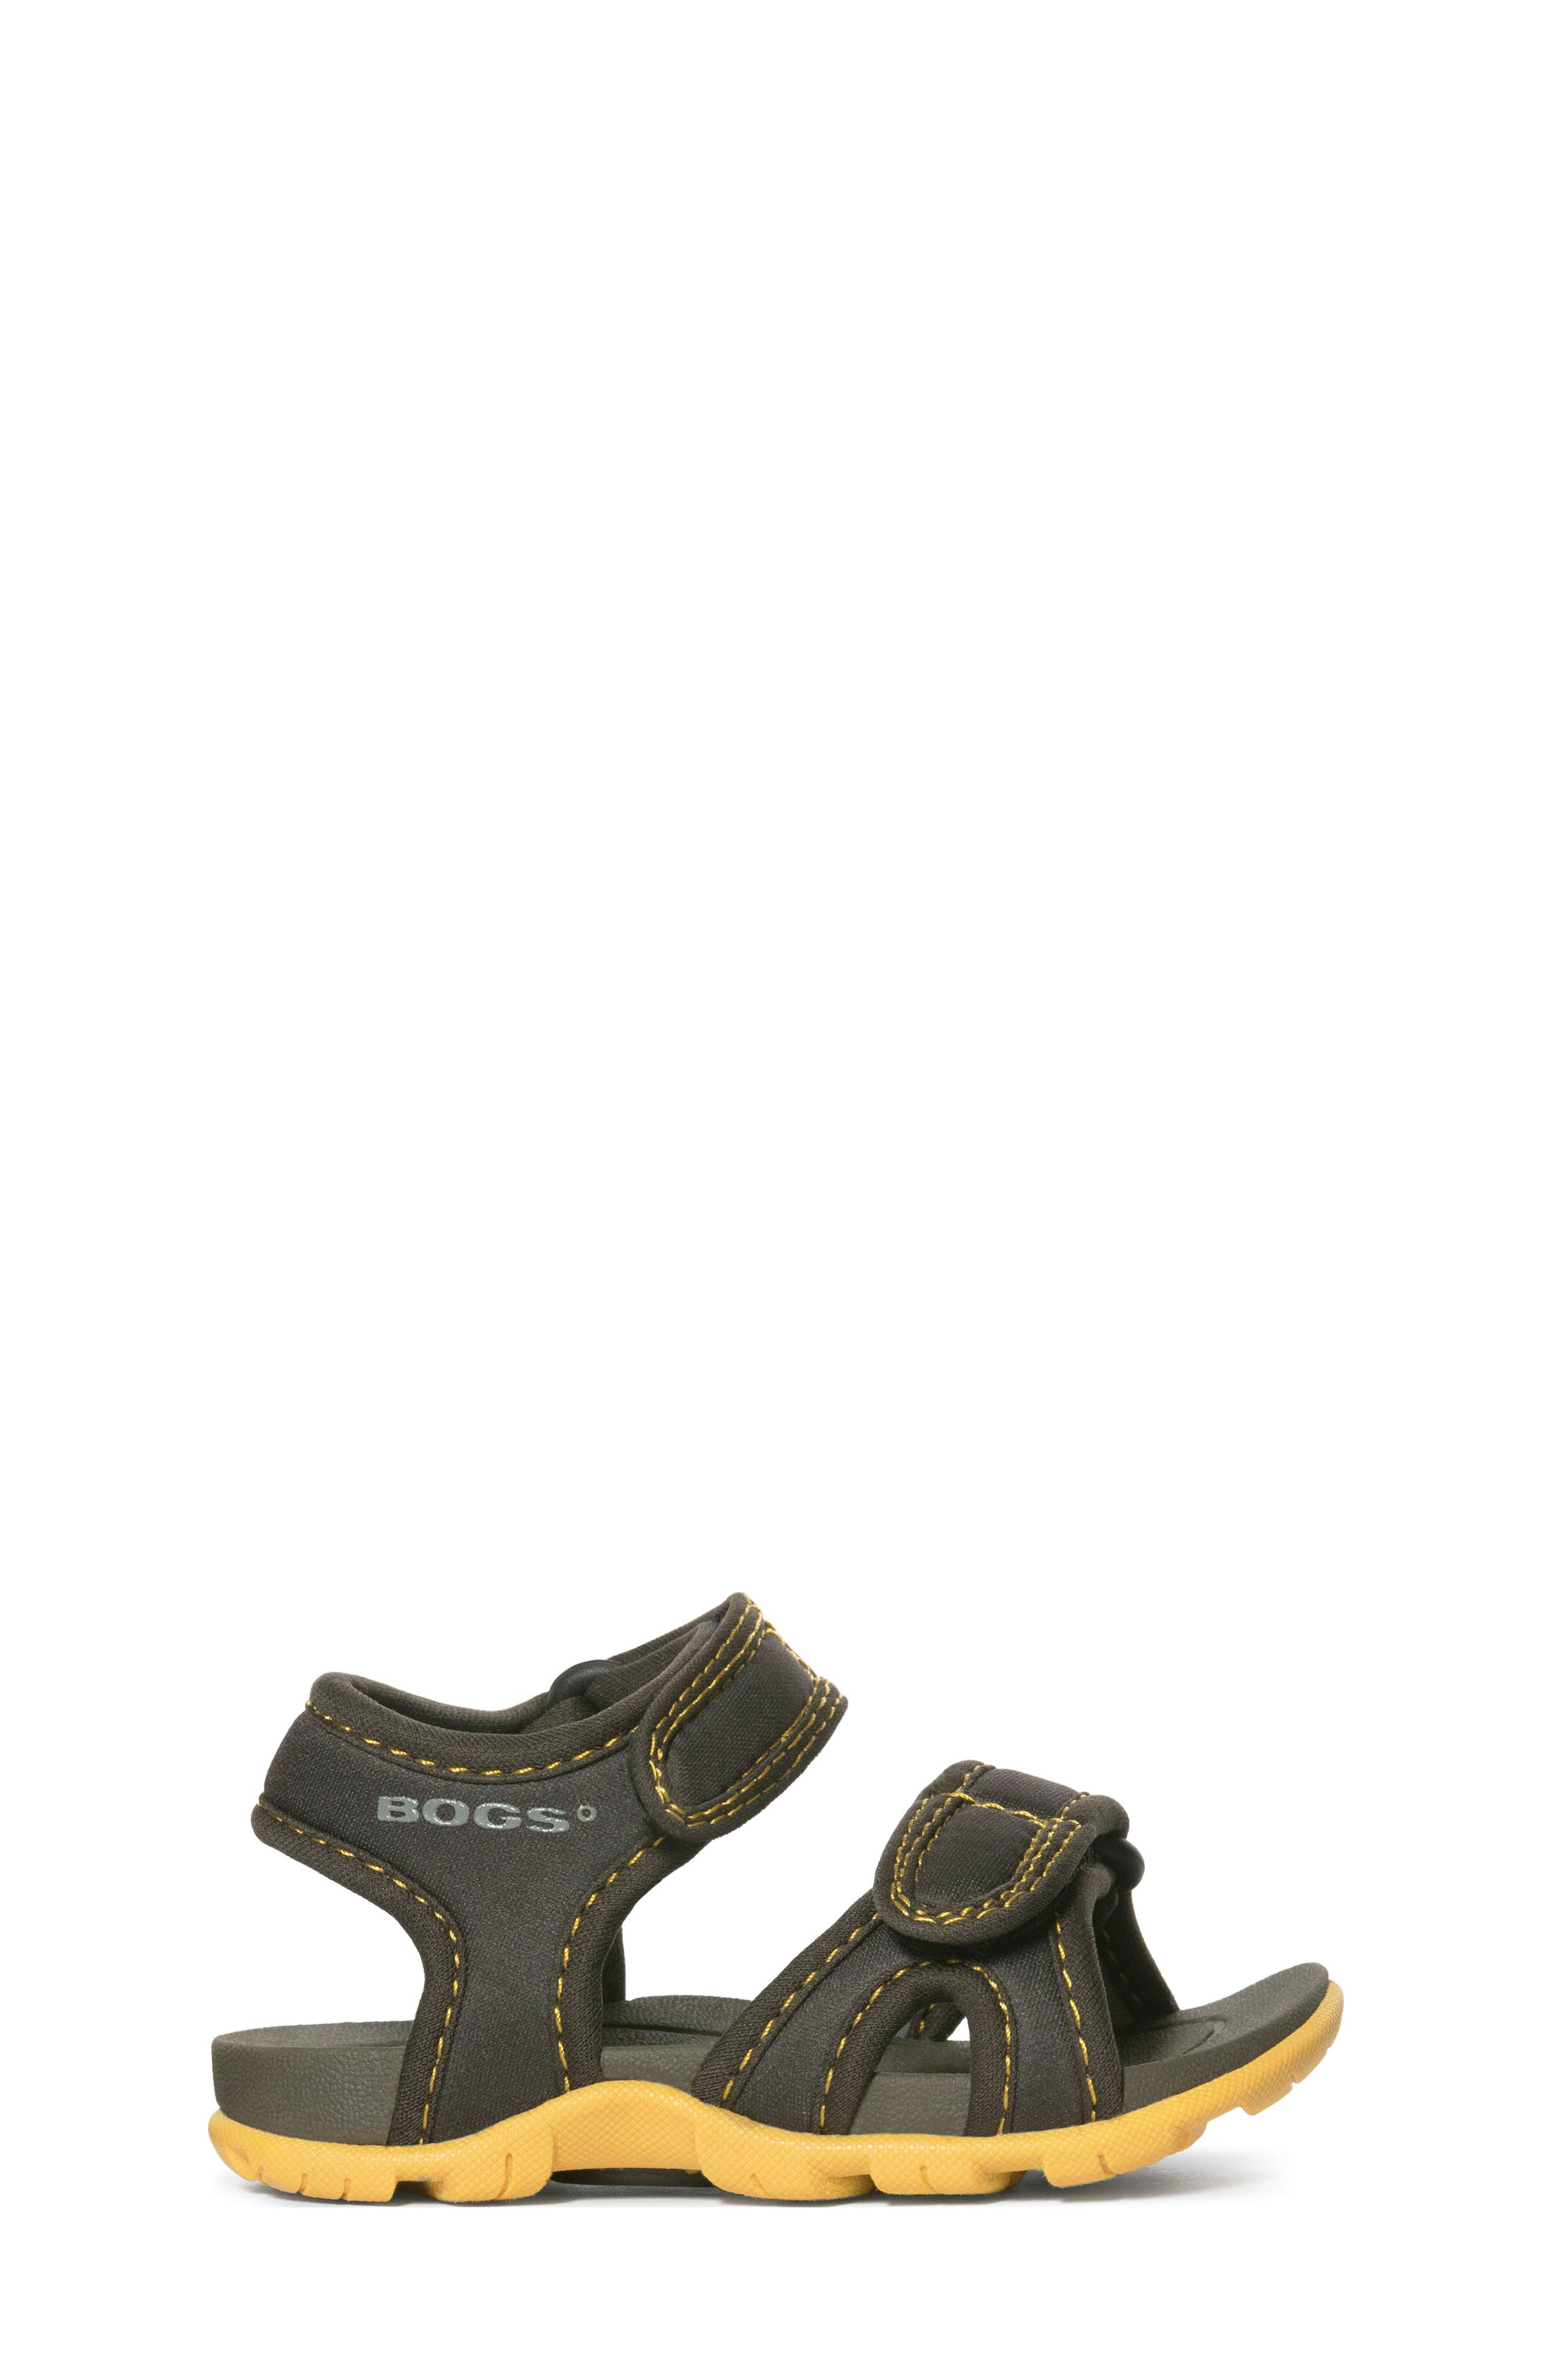 Whitefish Waterproof Sandal,                             Alternate thumbnail 7, color,                             OLIVE MULTI